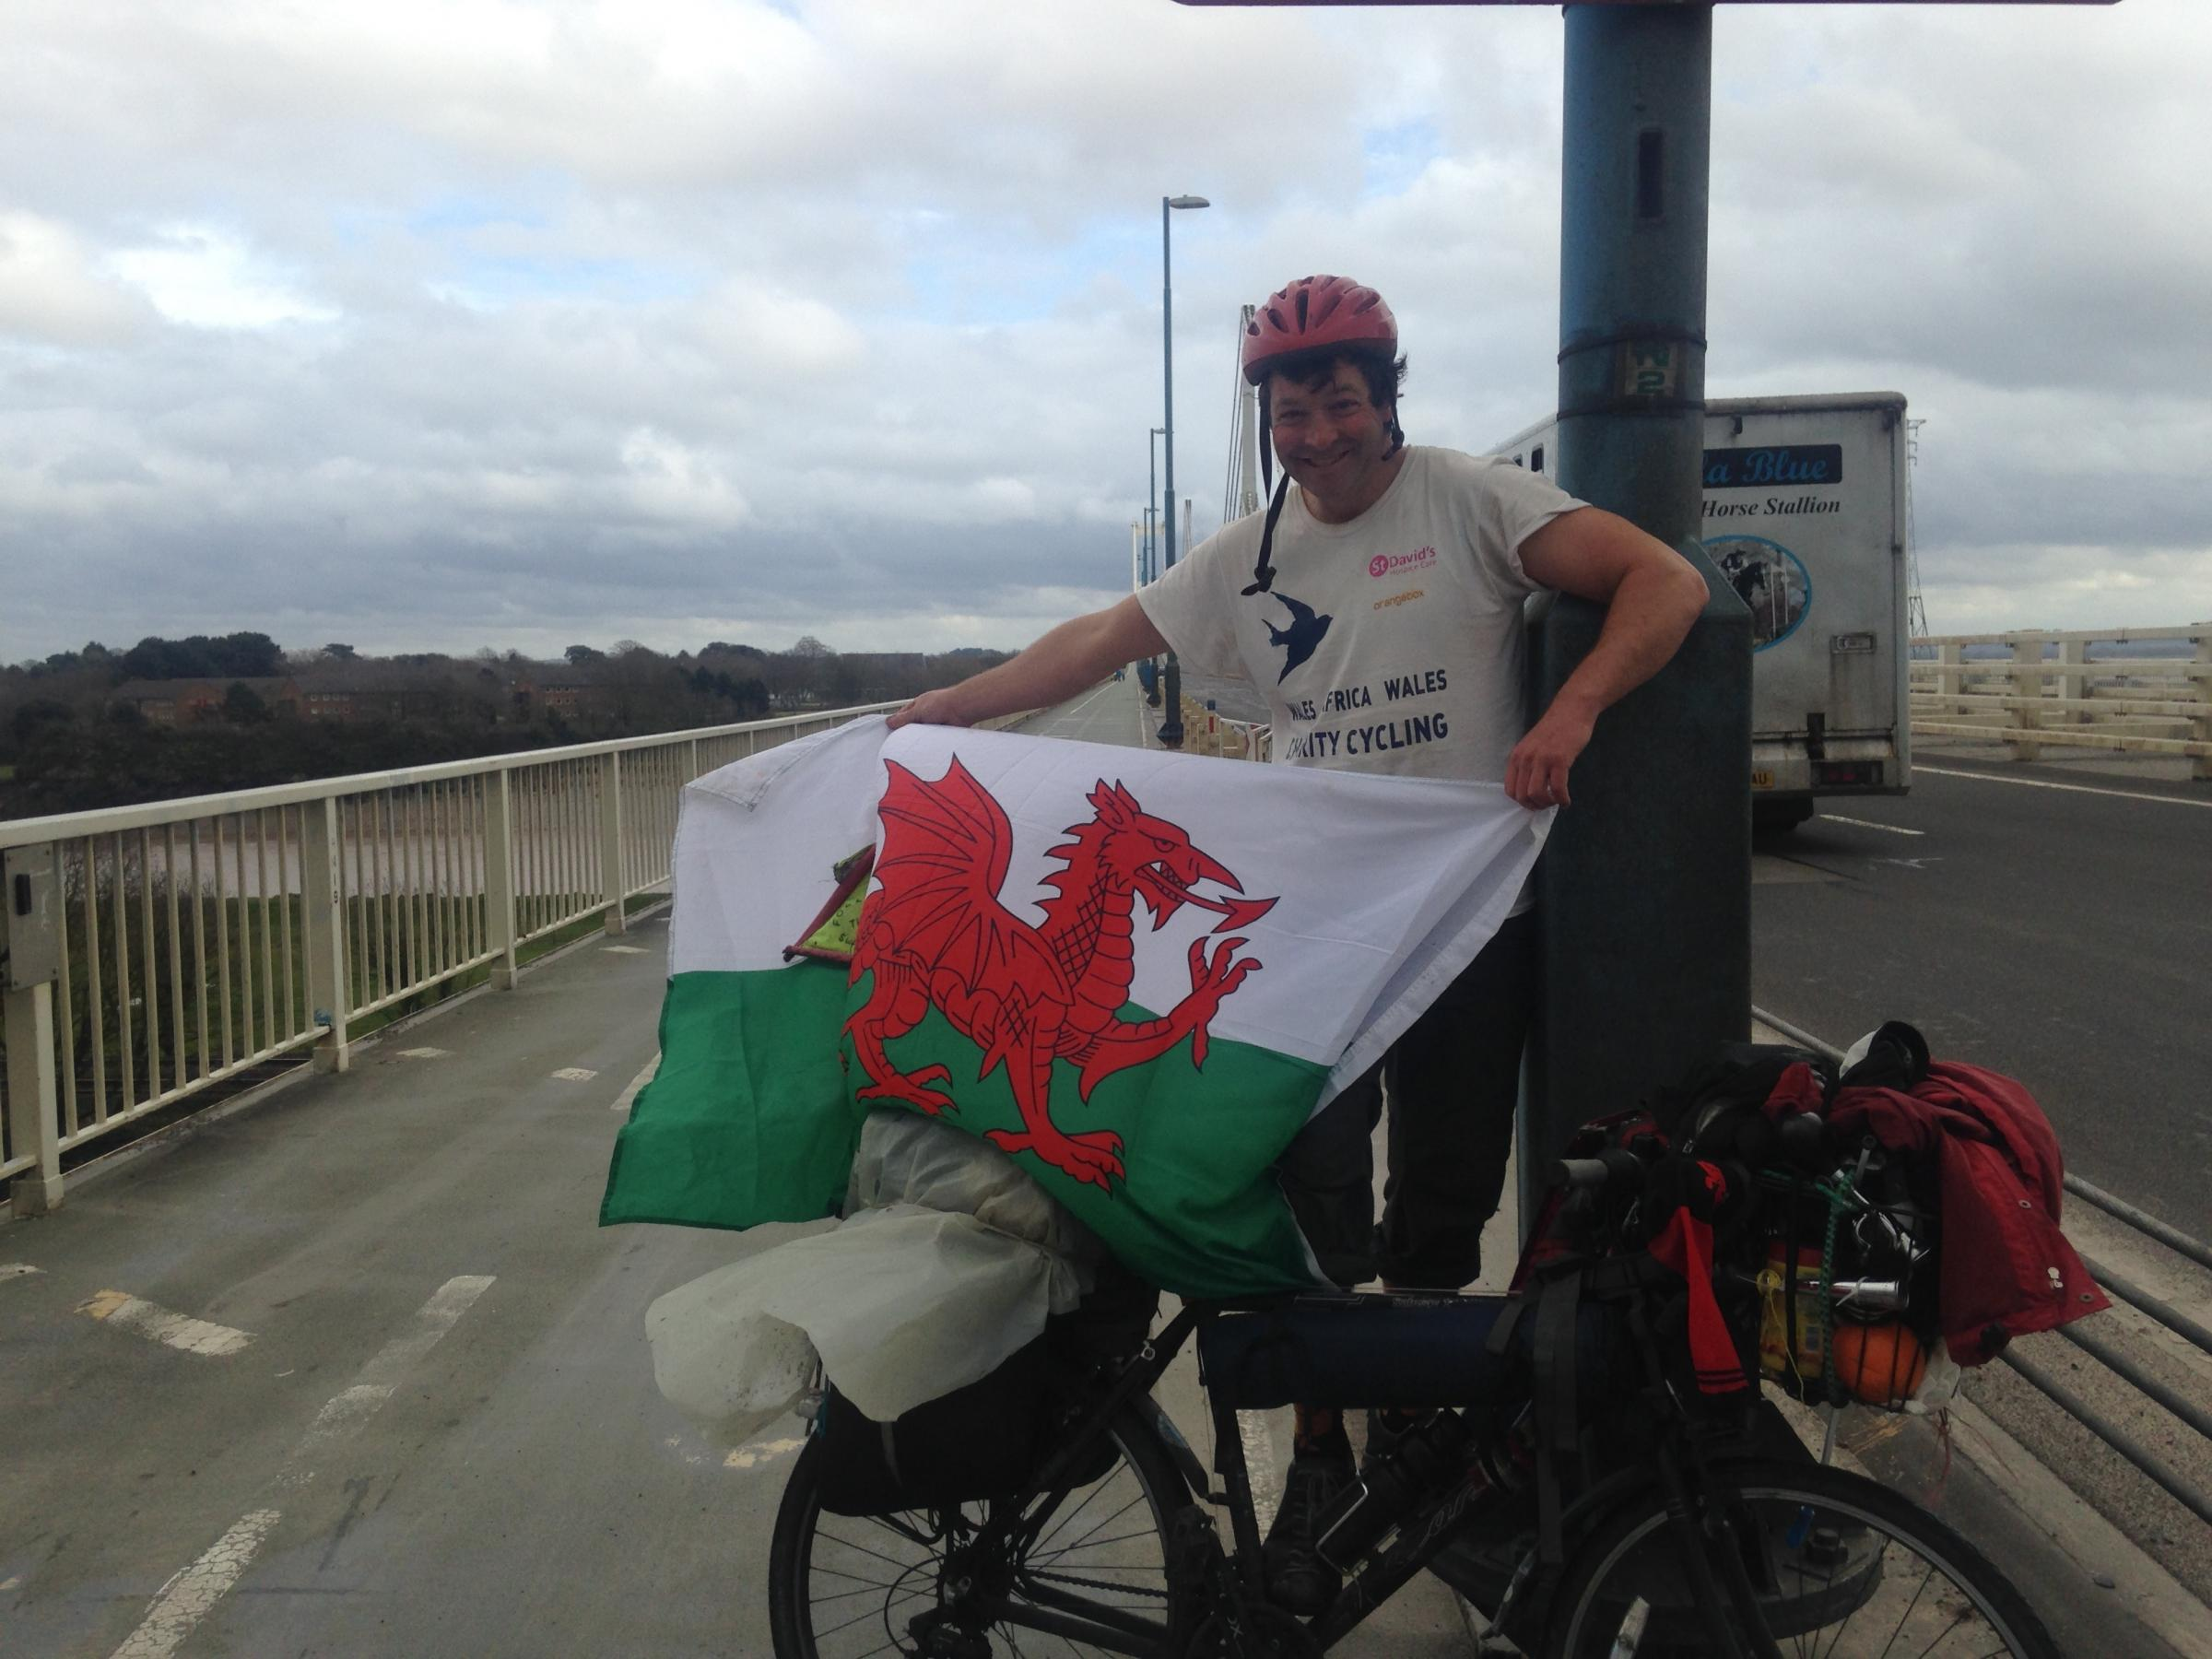 Ed Beverley-Jones crossing the Severn Bridge back to Wales